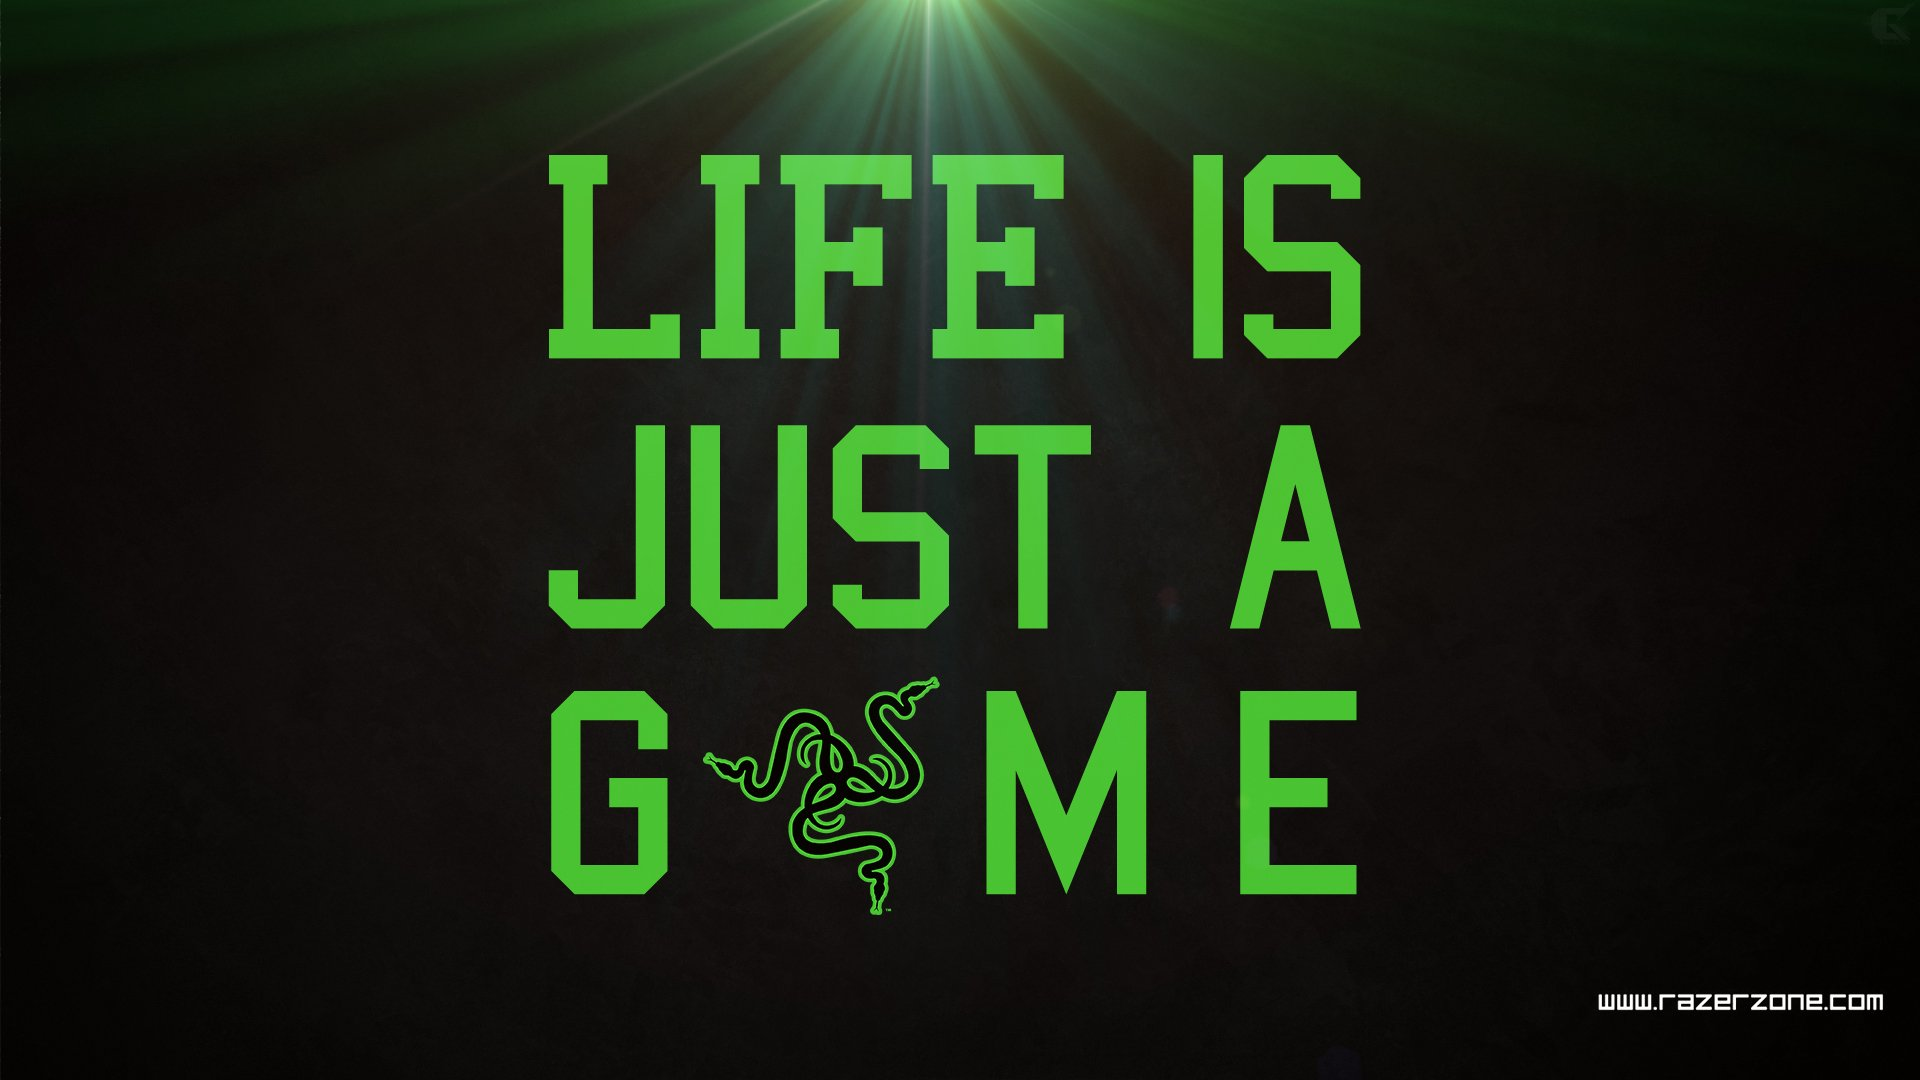 Razer Background Iphone Images 1920x1080